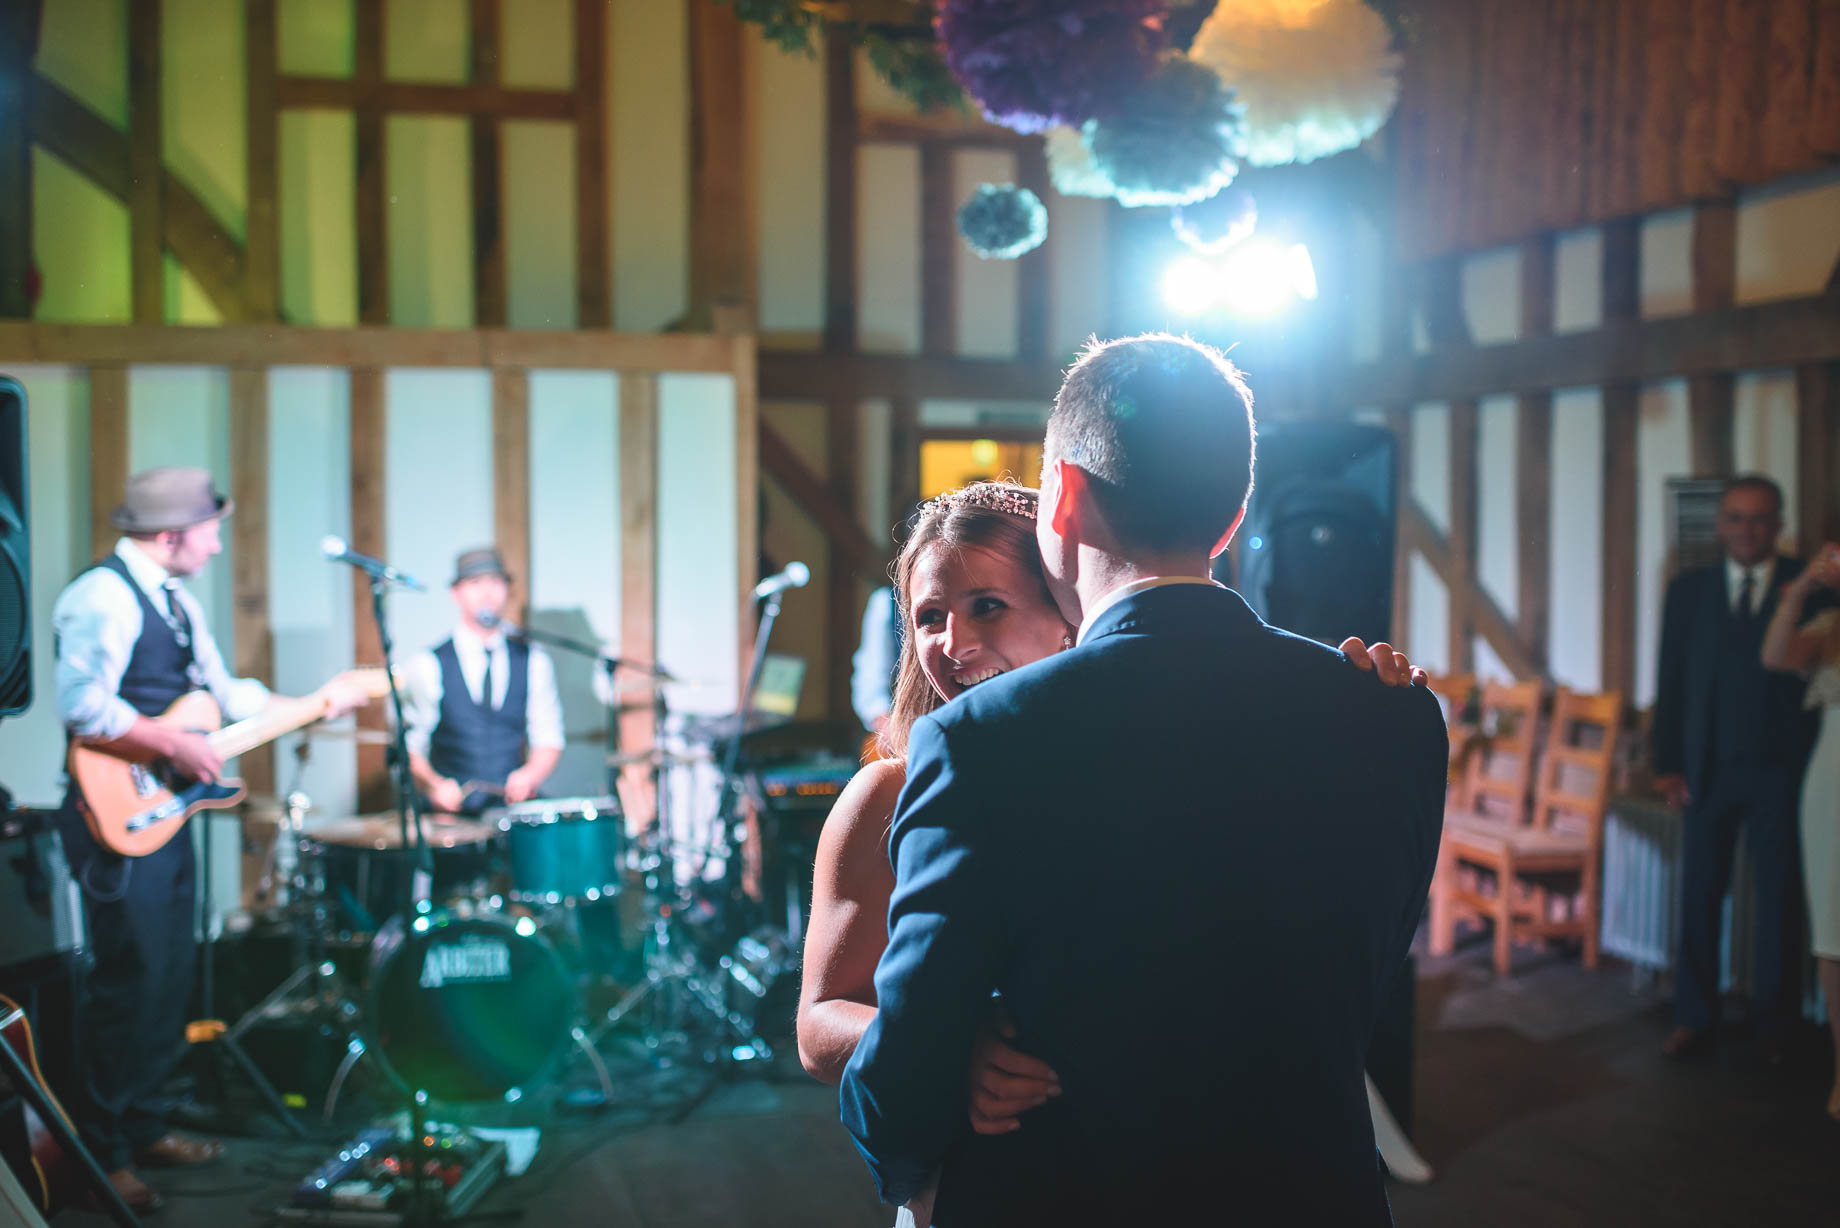 Gate Street Barn wedding photography - Guy Collier - Claire and Andy (181 of 192)